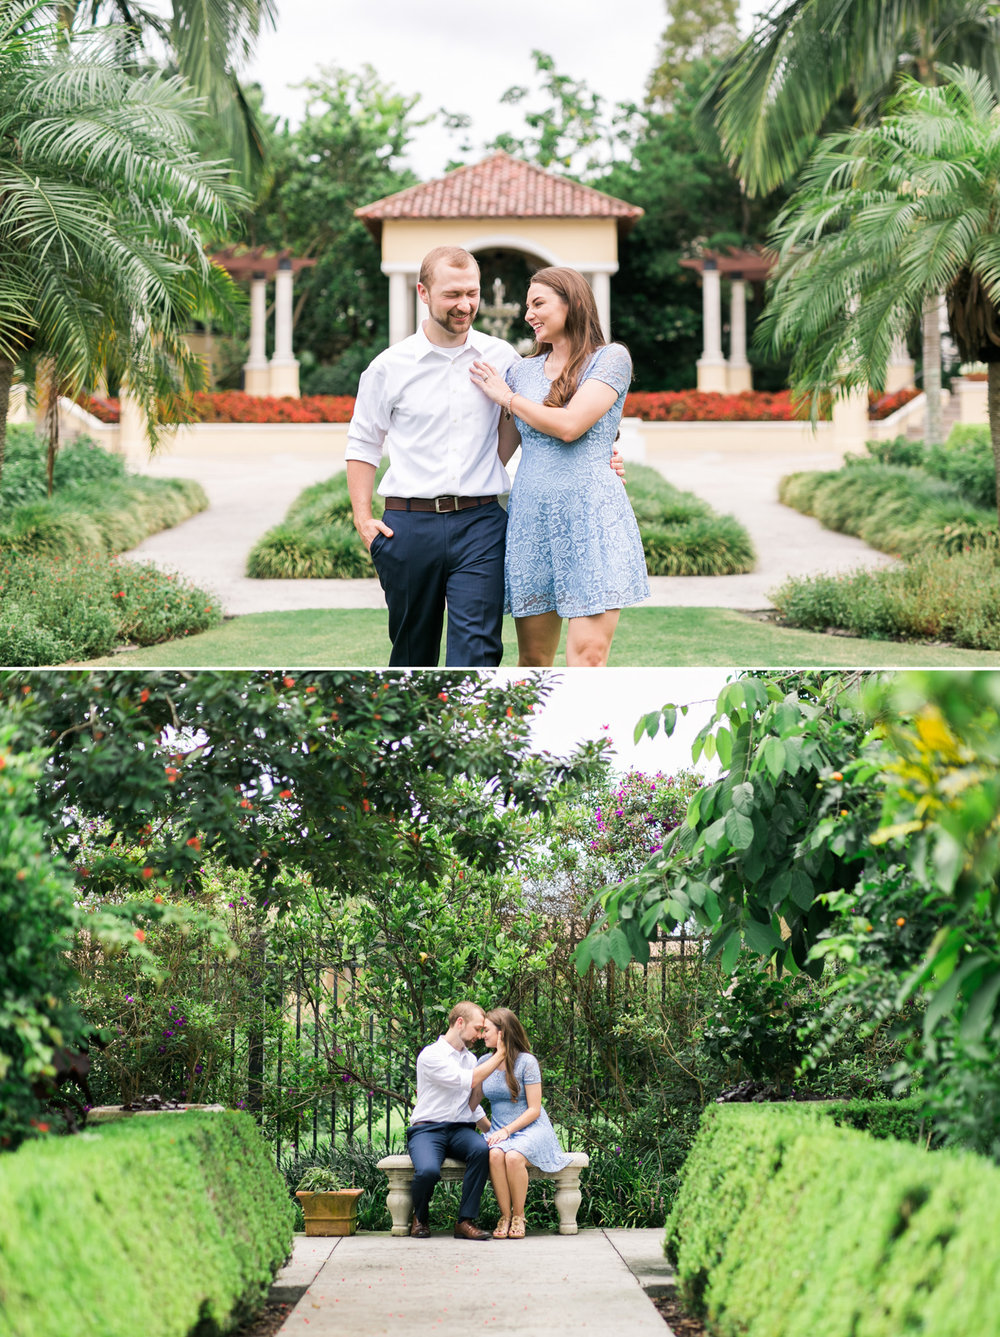 CONNOR + KALEY | HOLLIS GARDENS ENGAGEMENT - LAKELAND, FL — Elaine K ...